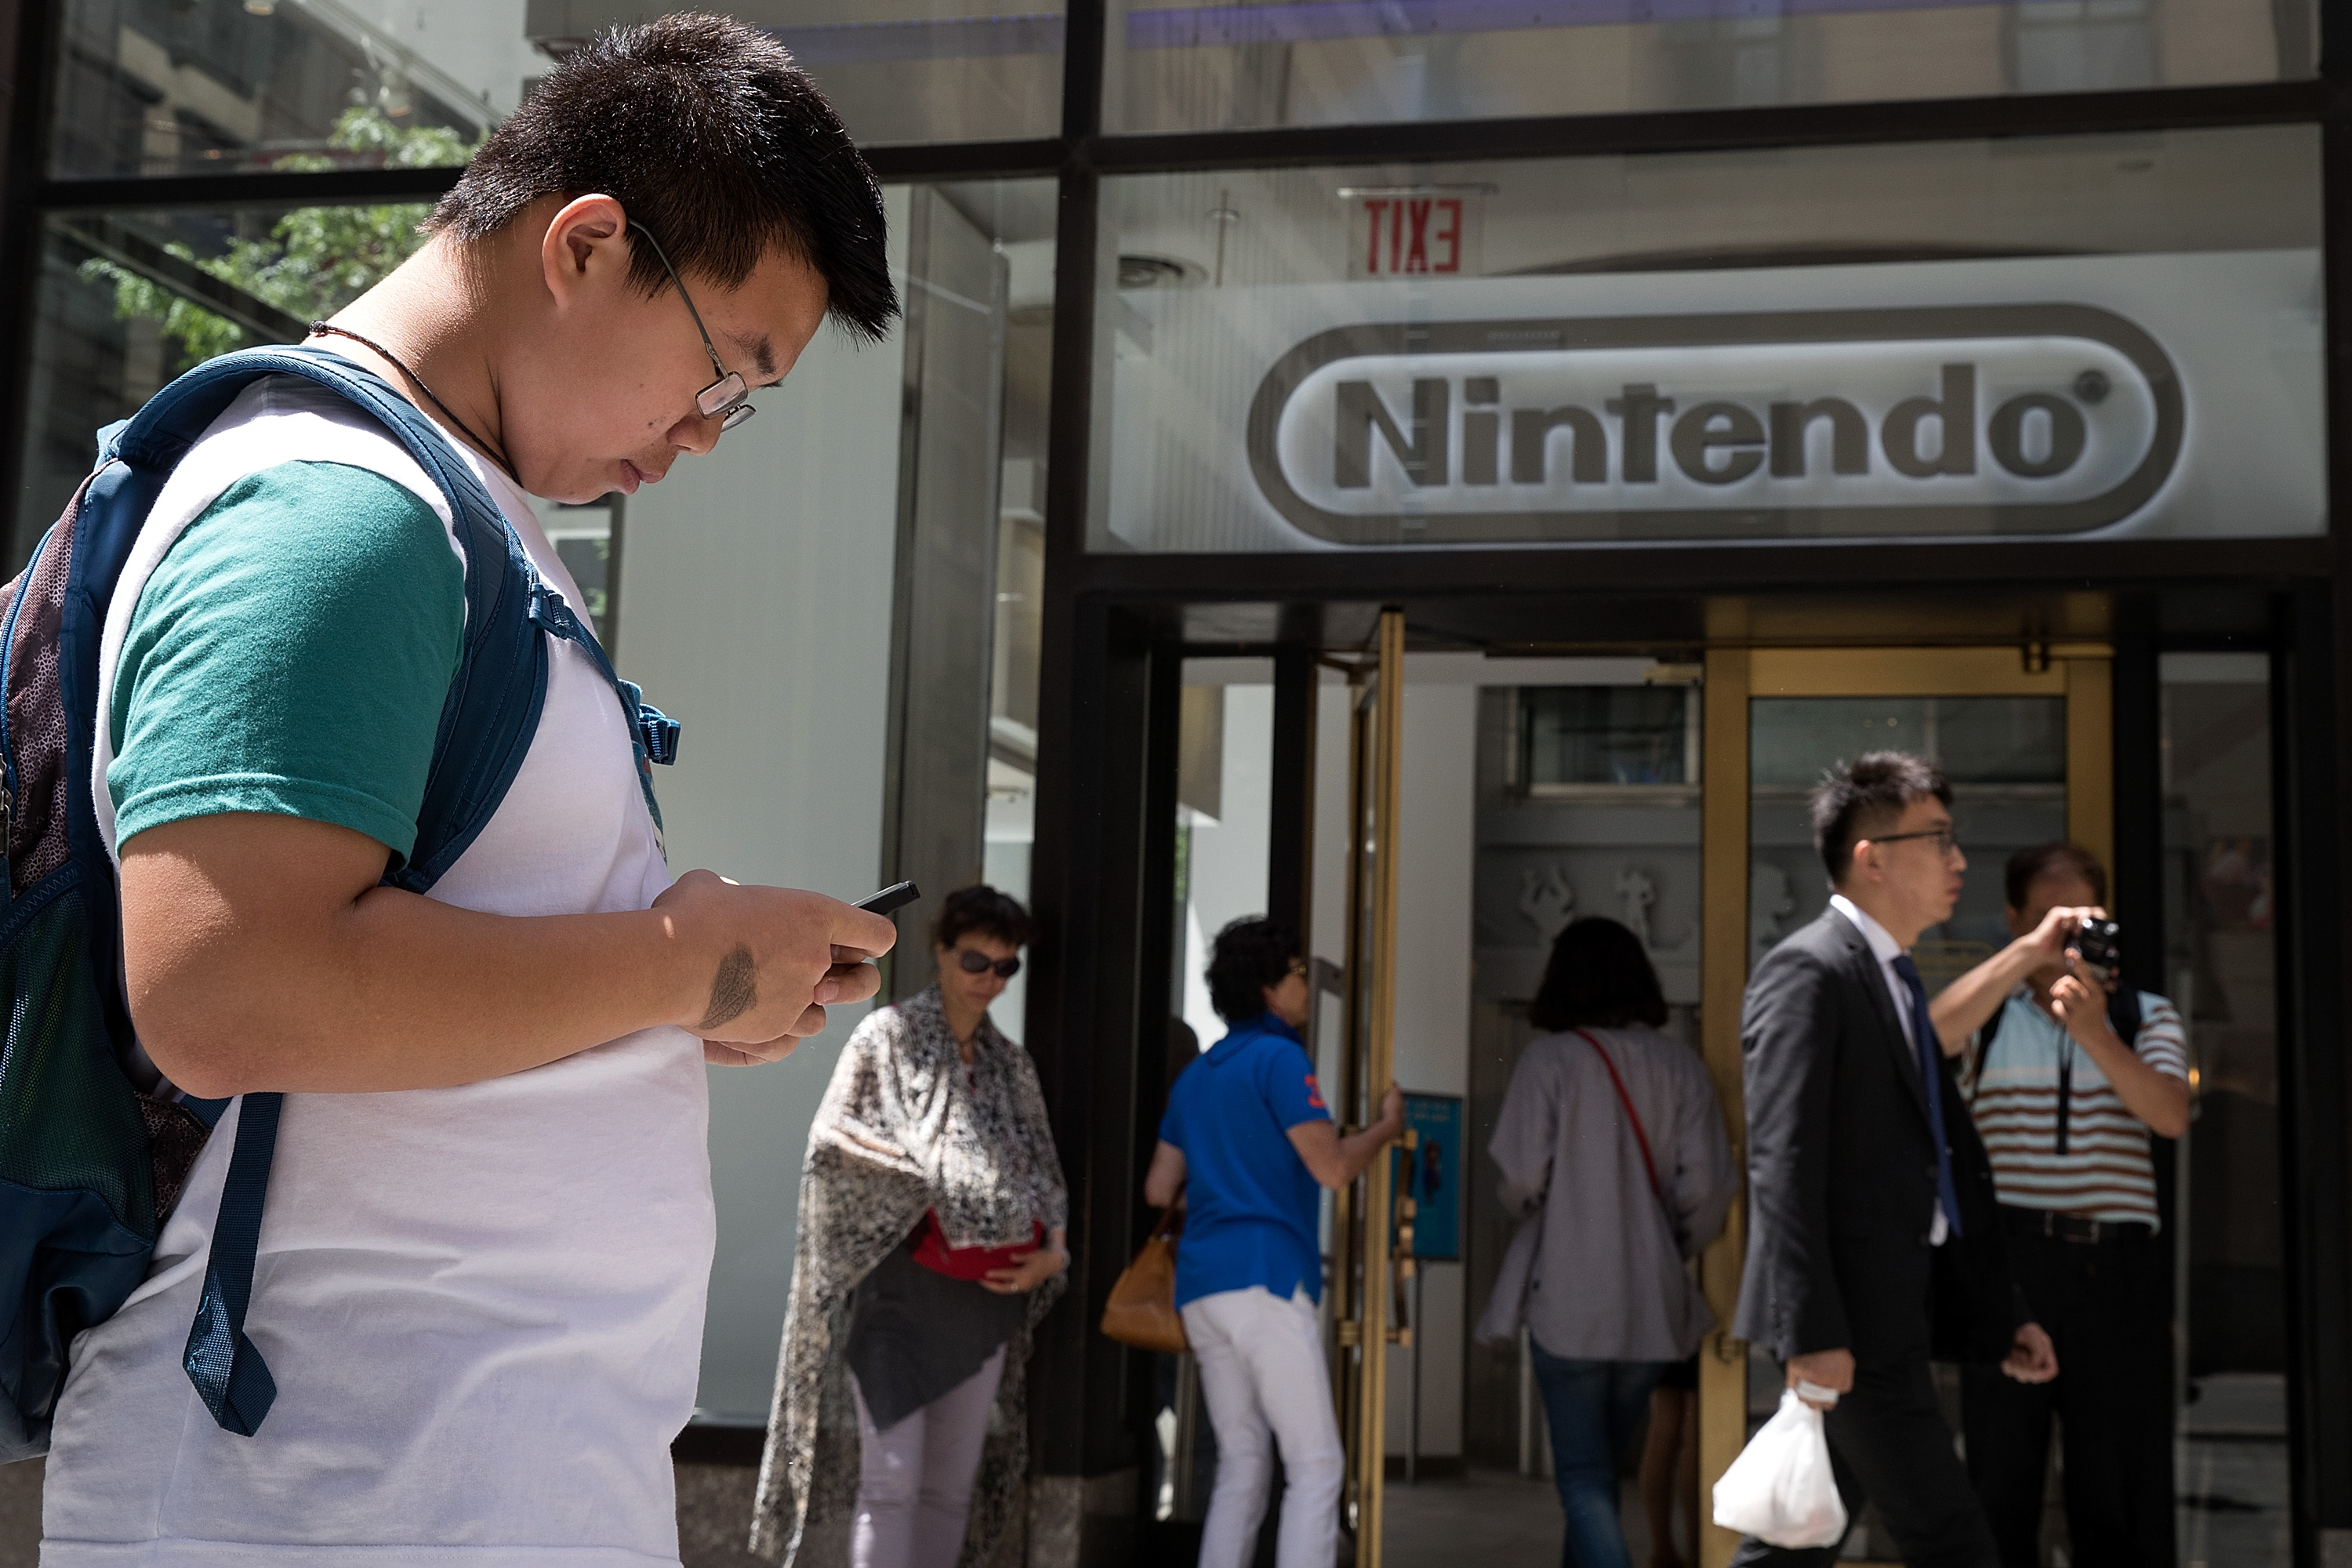 Tim (last name not given) plays Pokemon Go on his smartphone outside of Nintendo's flagship store, July 11, 2016, in New York City. The success of Nintendo's new smartphone game, Pokemon Go, has sent shares of Nintendo soaring